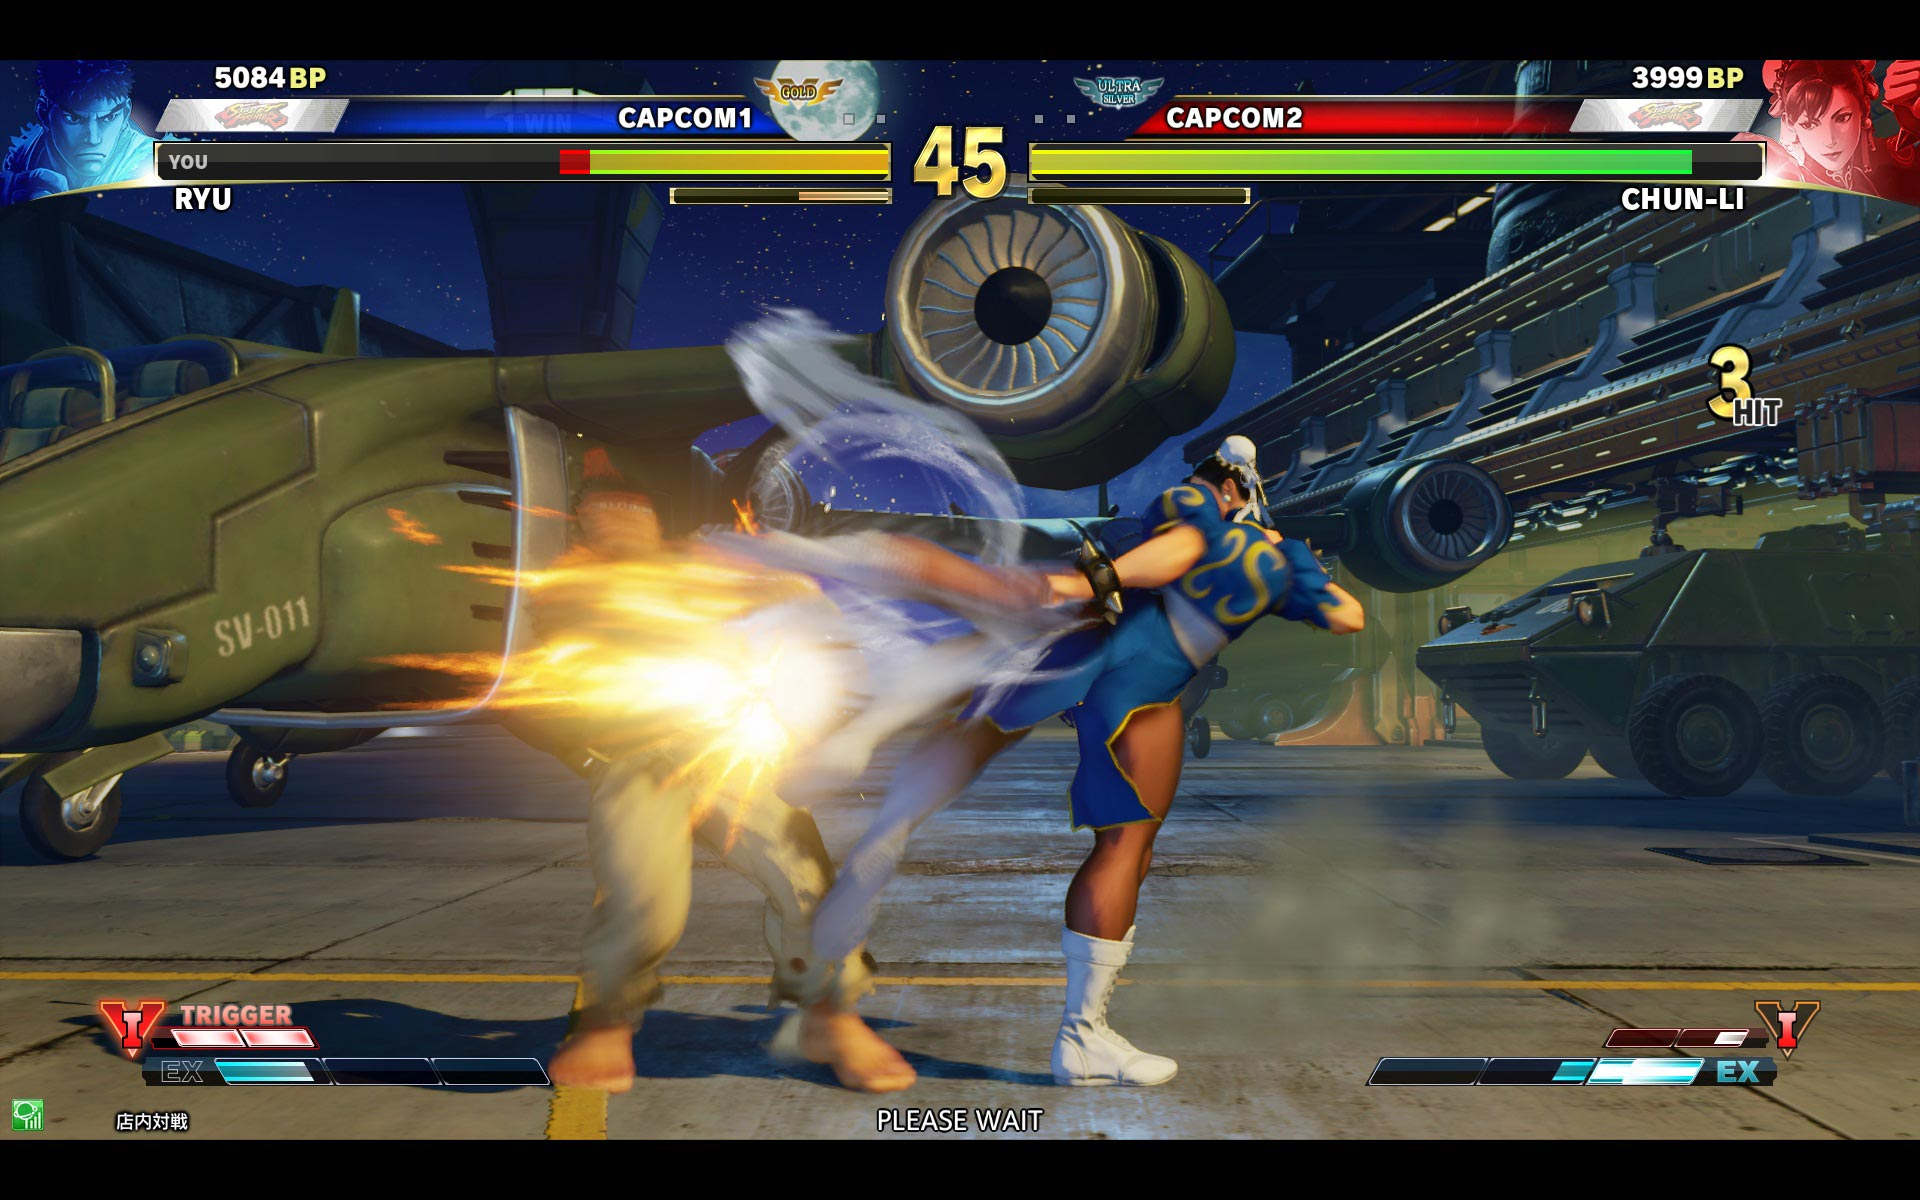 Street Fighter 5: Type Arcade launch 5 out of 6 image gallery